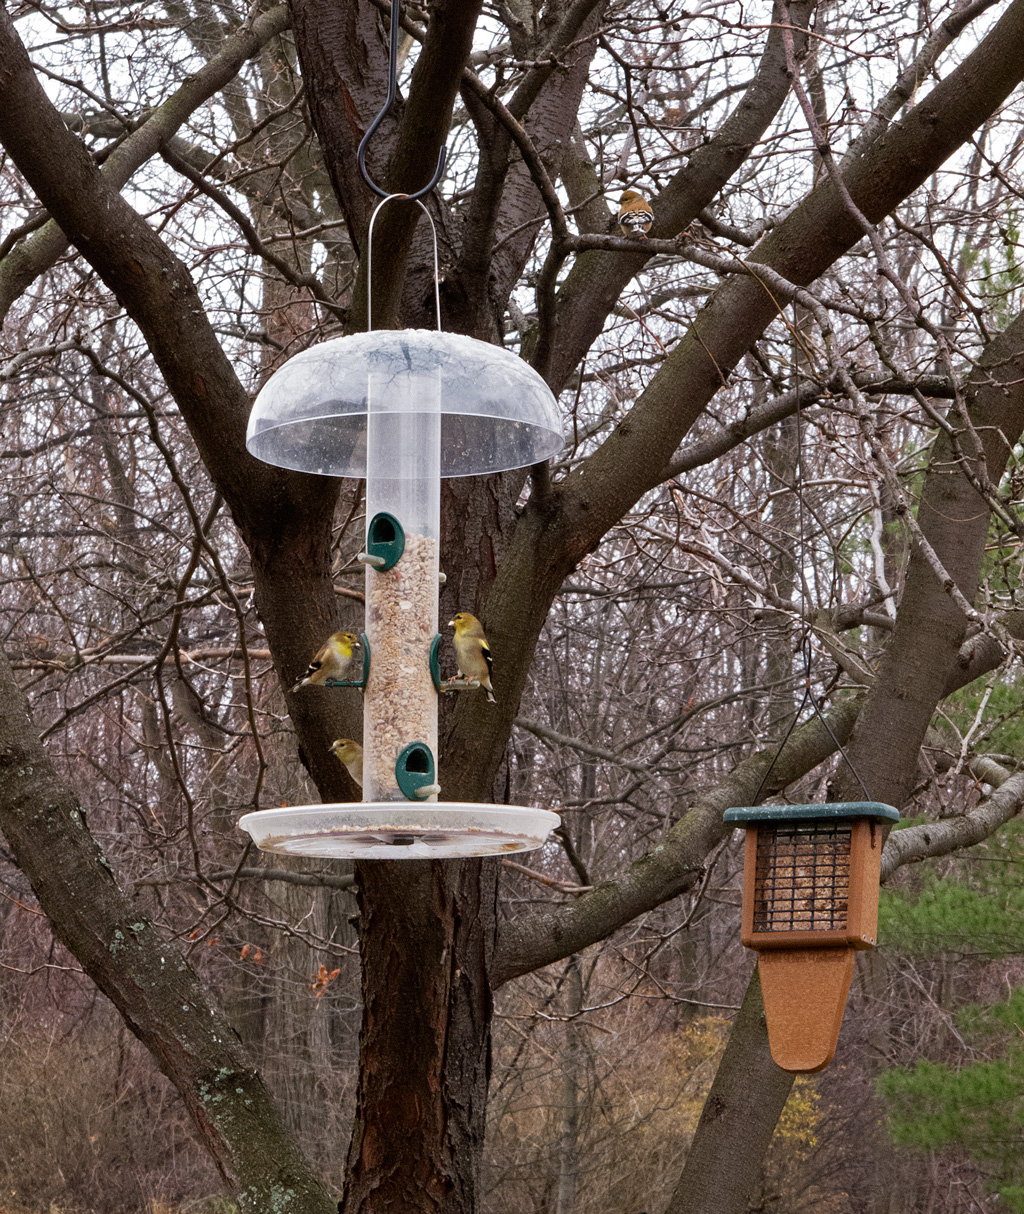 Photo: Goldfinches on bird feeder. Photo by James Guilford.